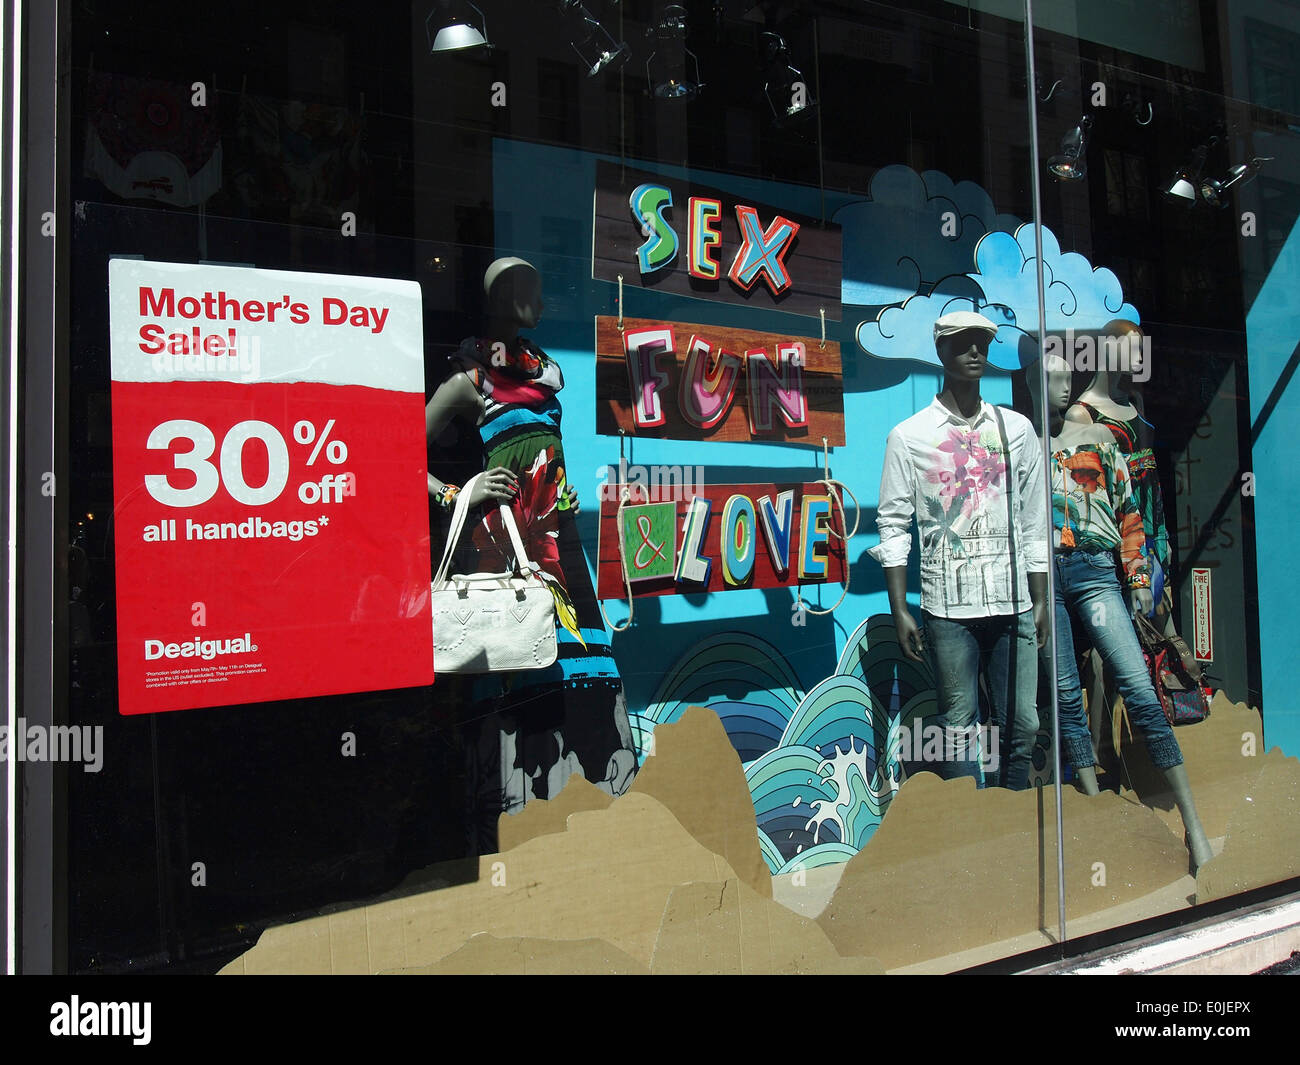 Mother's Day Sale sign, Desigual store - Stock Image